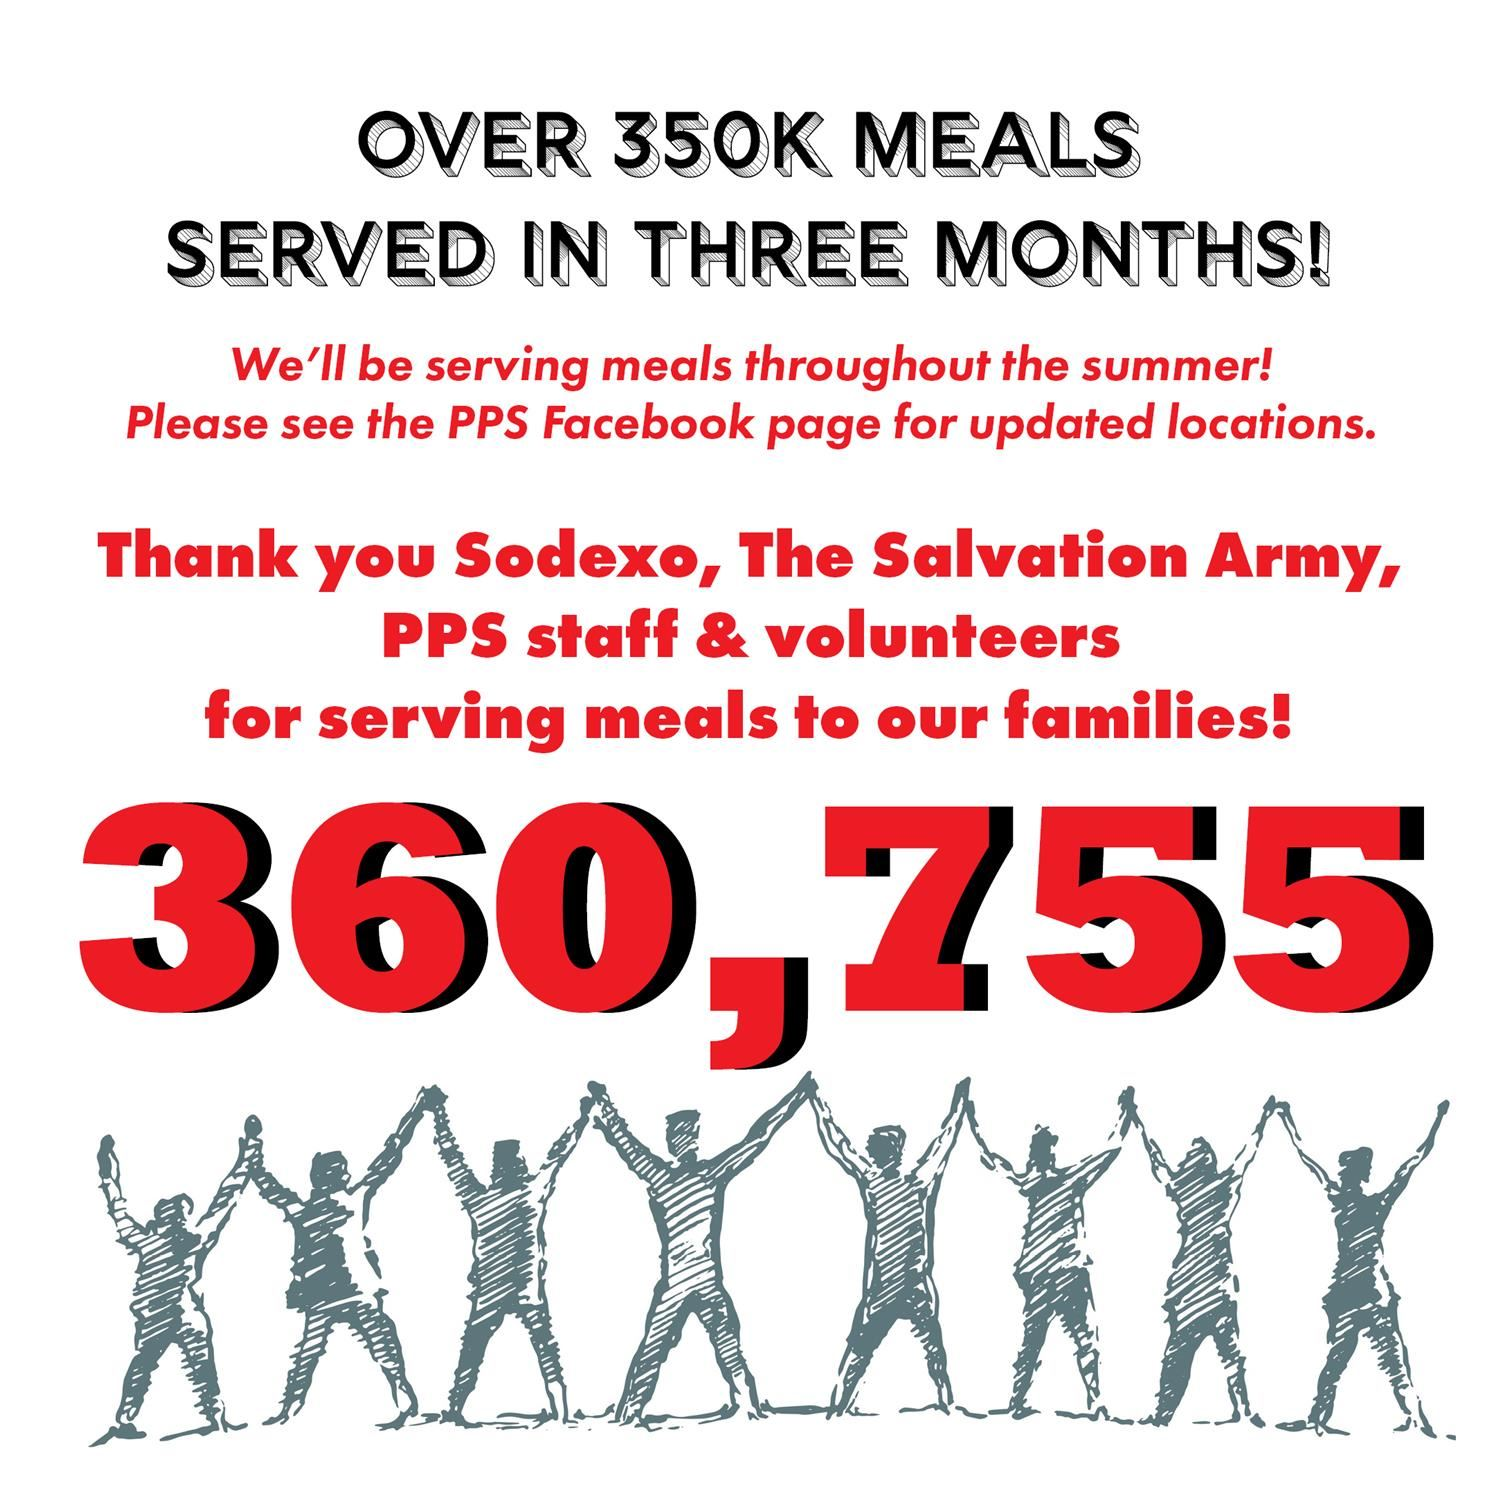 PPS staff, volunteers have distributed over 350,000 meals since March 17.